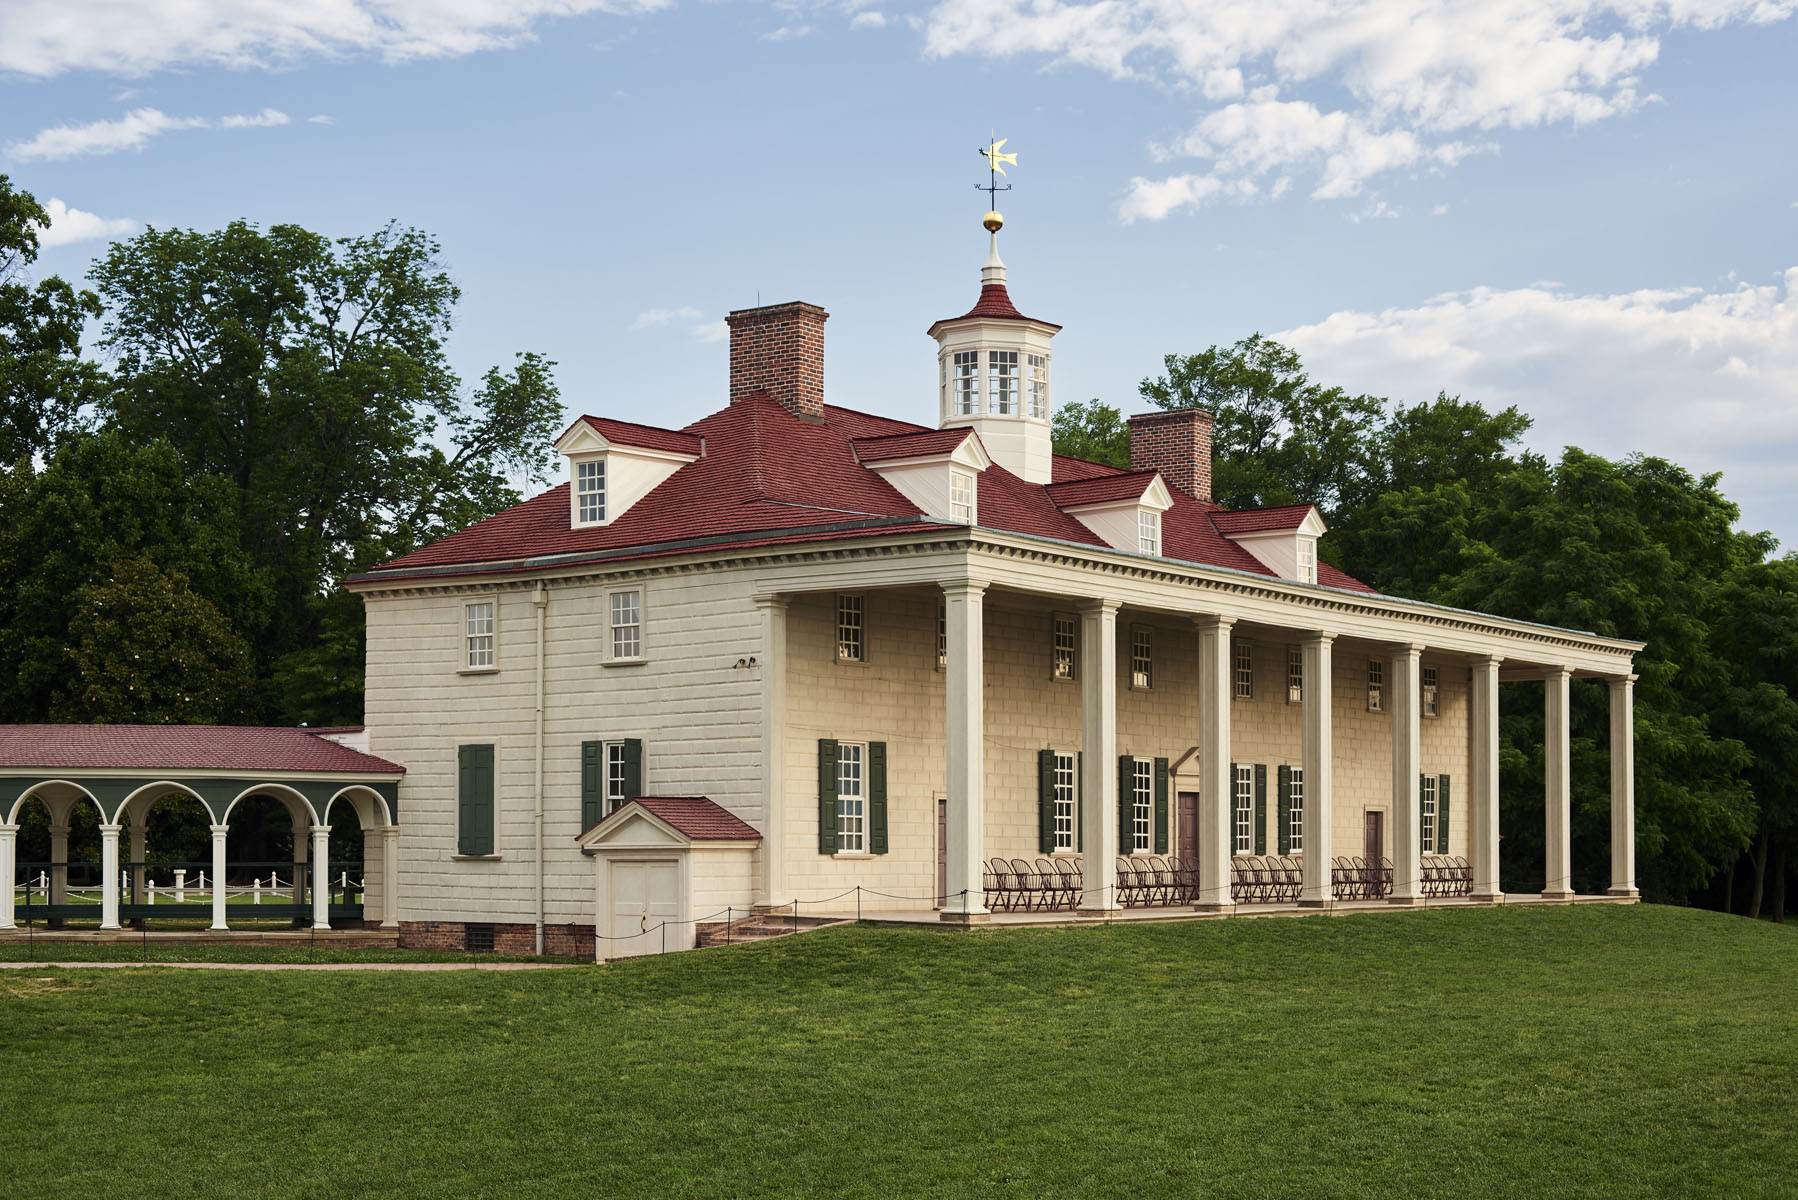 George Washington's iconic mansion overlooks the Potomac River